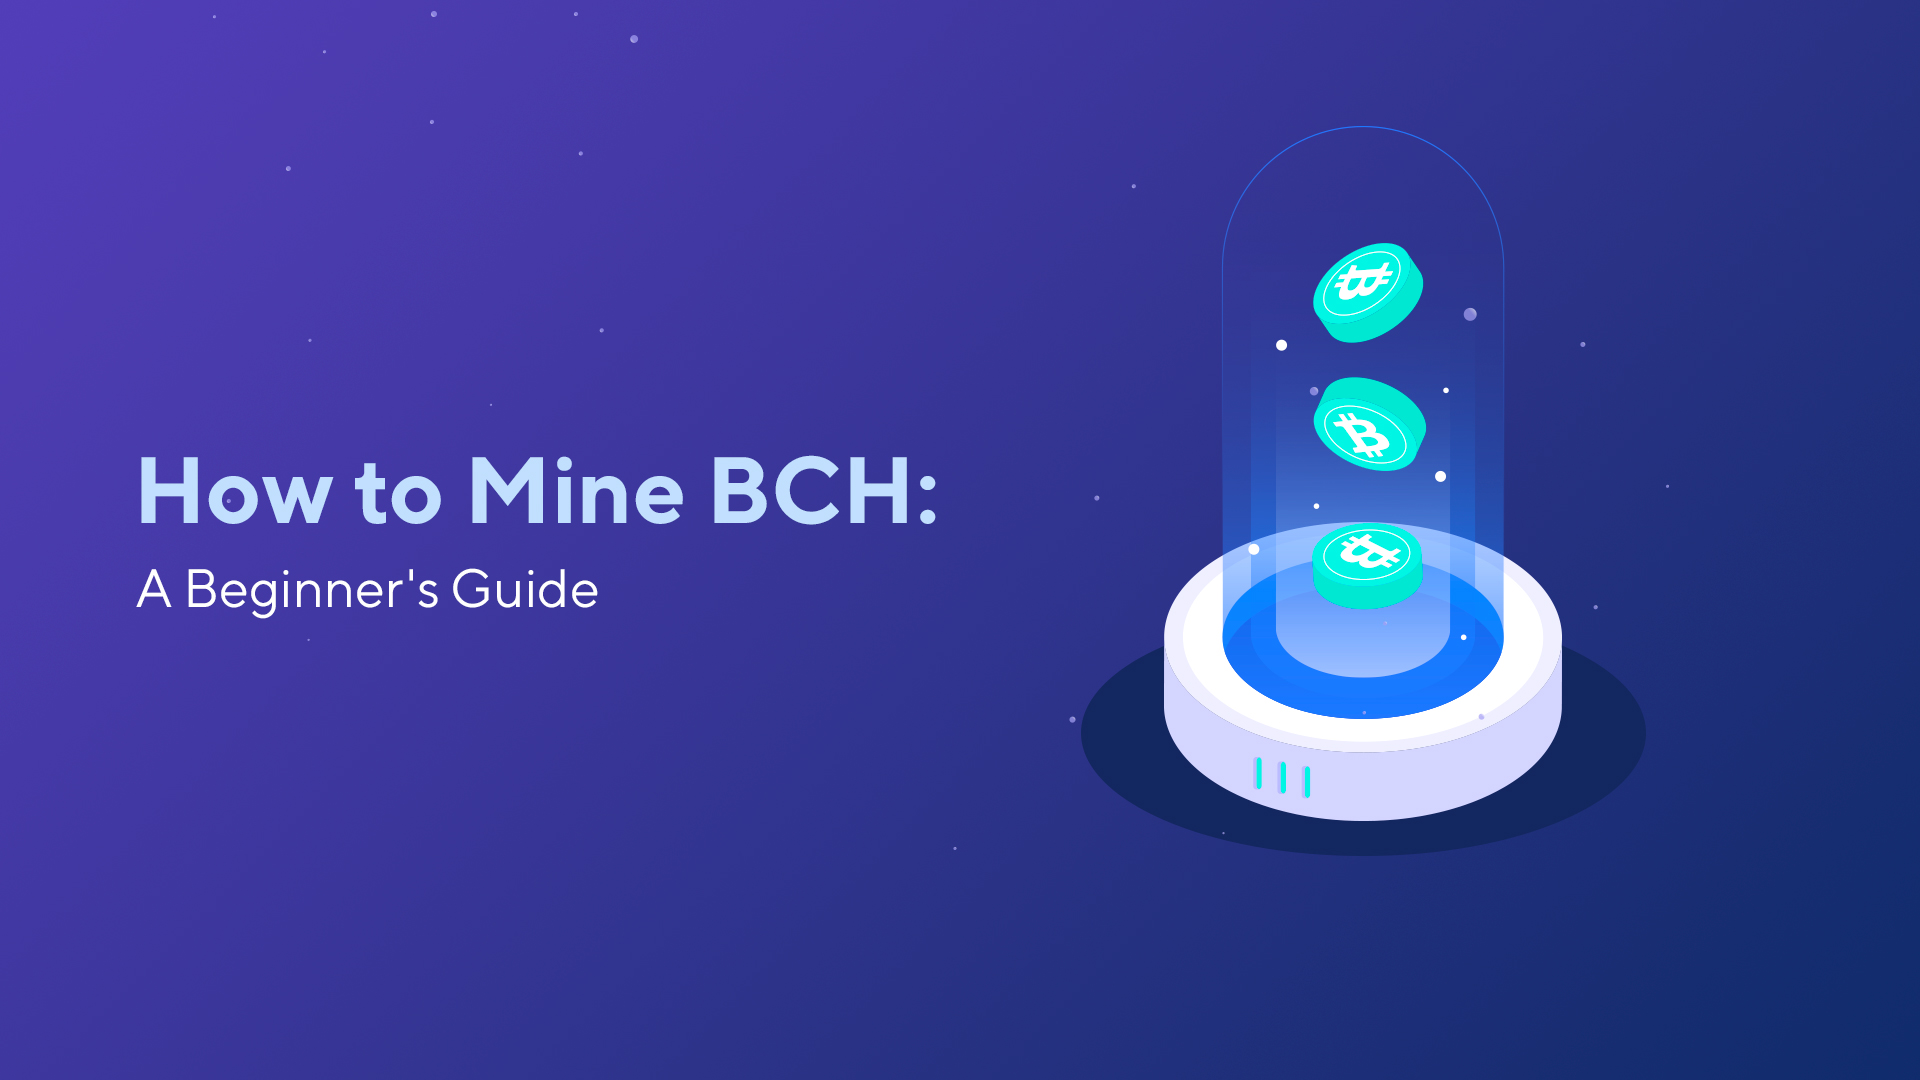 How to Mine BCH: A Beginner's Guide